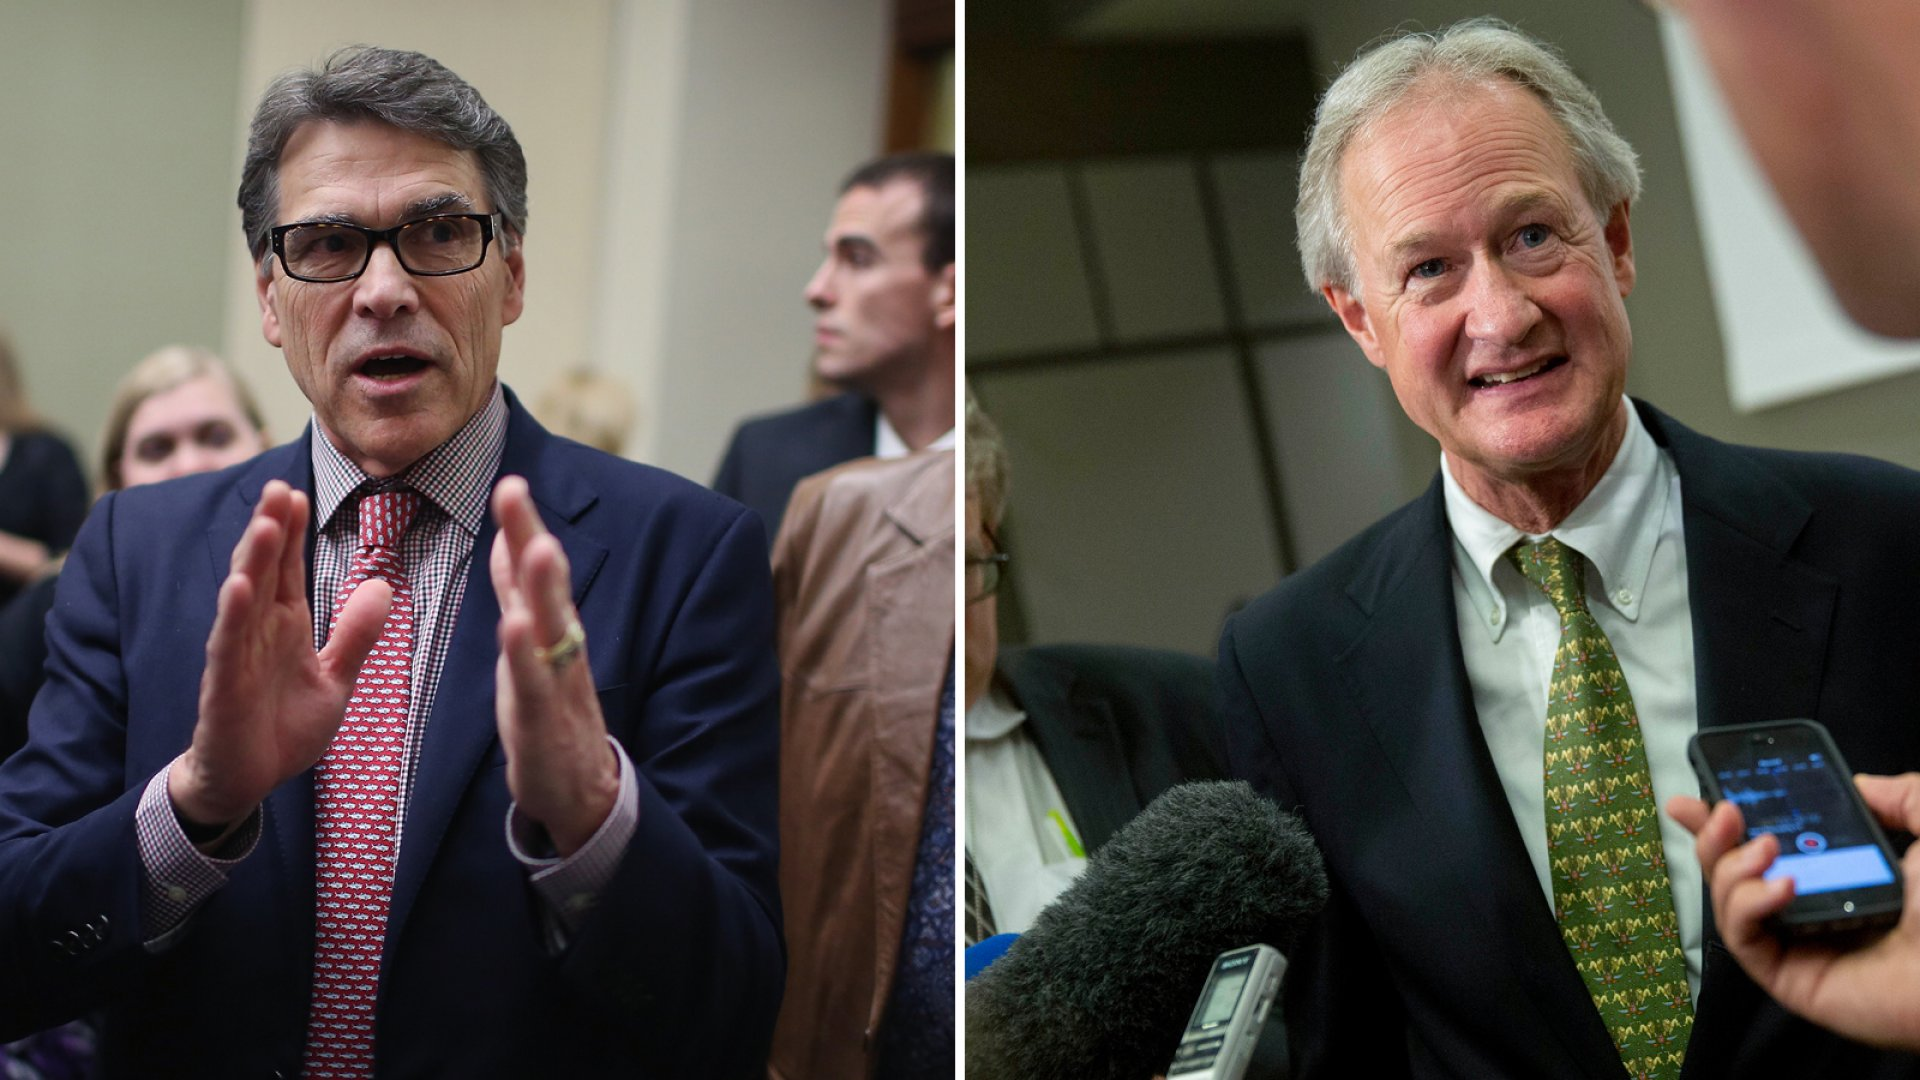 Former governor Rick Perry (R., Texas) and former senator and governor Lincoln Chafee (D., Rhode Island) will run for president.